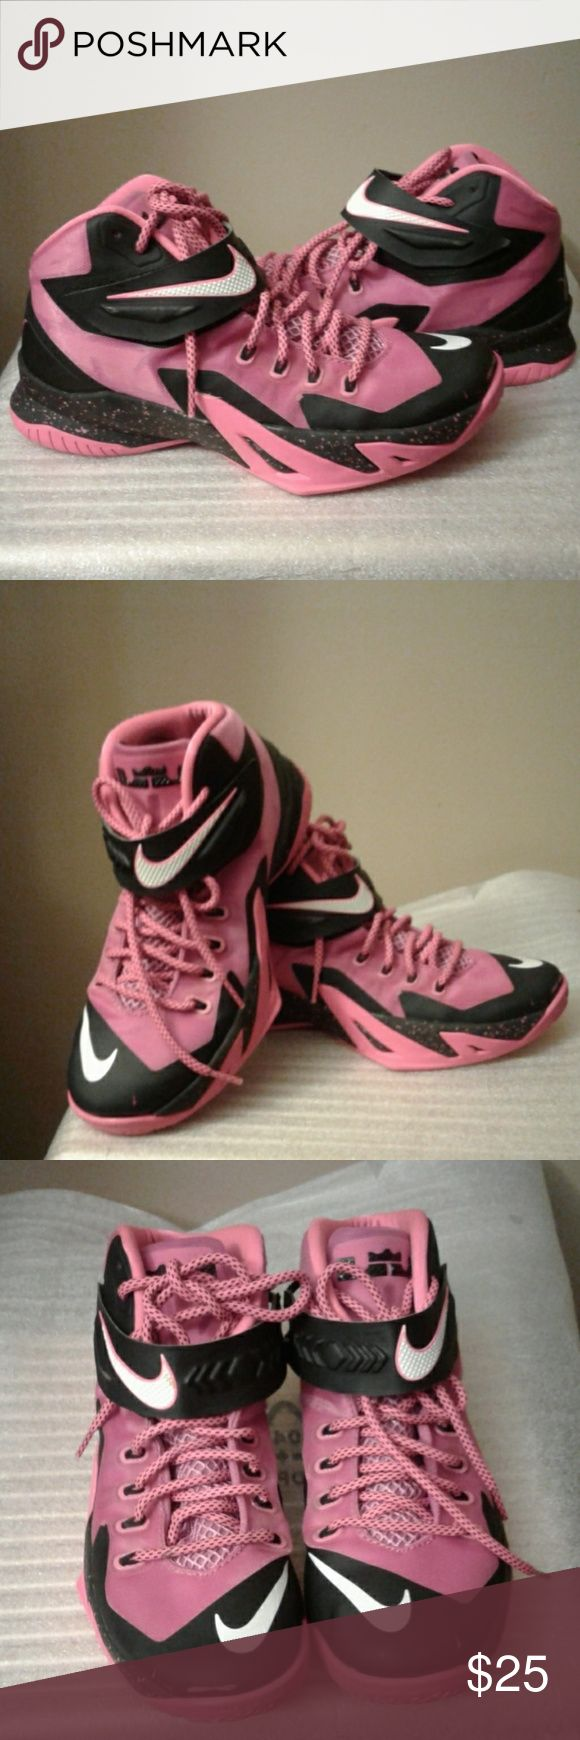 Nike LeBron sneakers Pink and black LeBron James sneakers. Size 8 men's, scuff marks shown on toes Nike Shoes Athletic Shoes